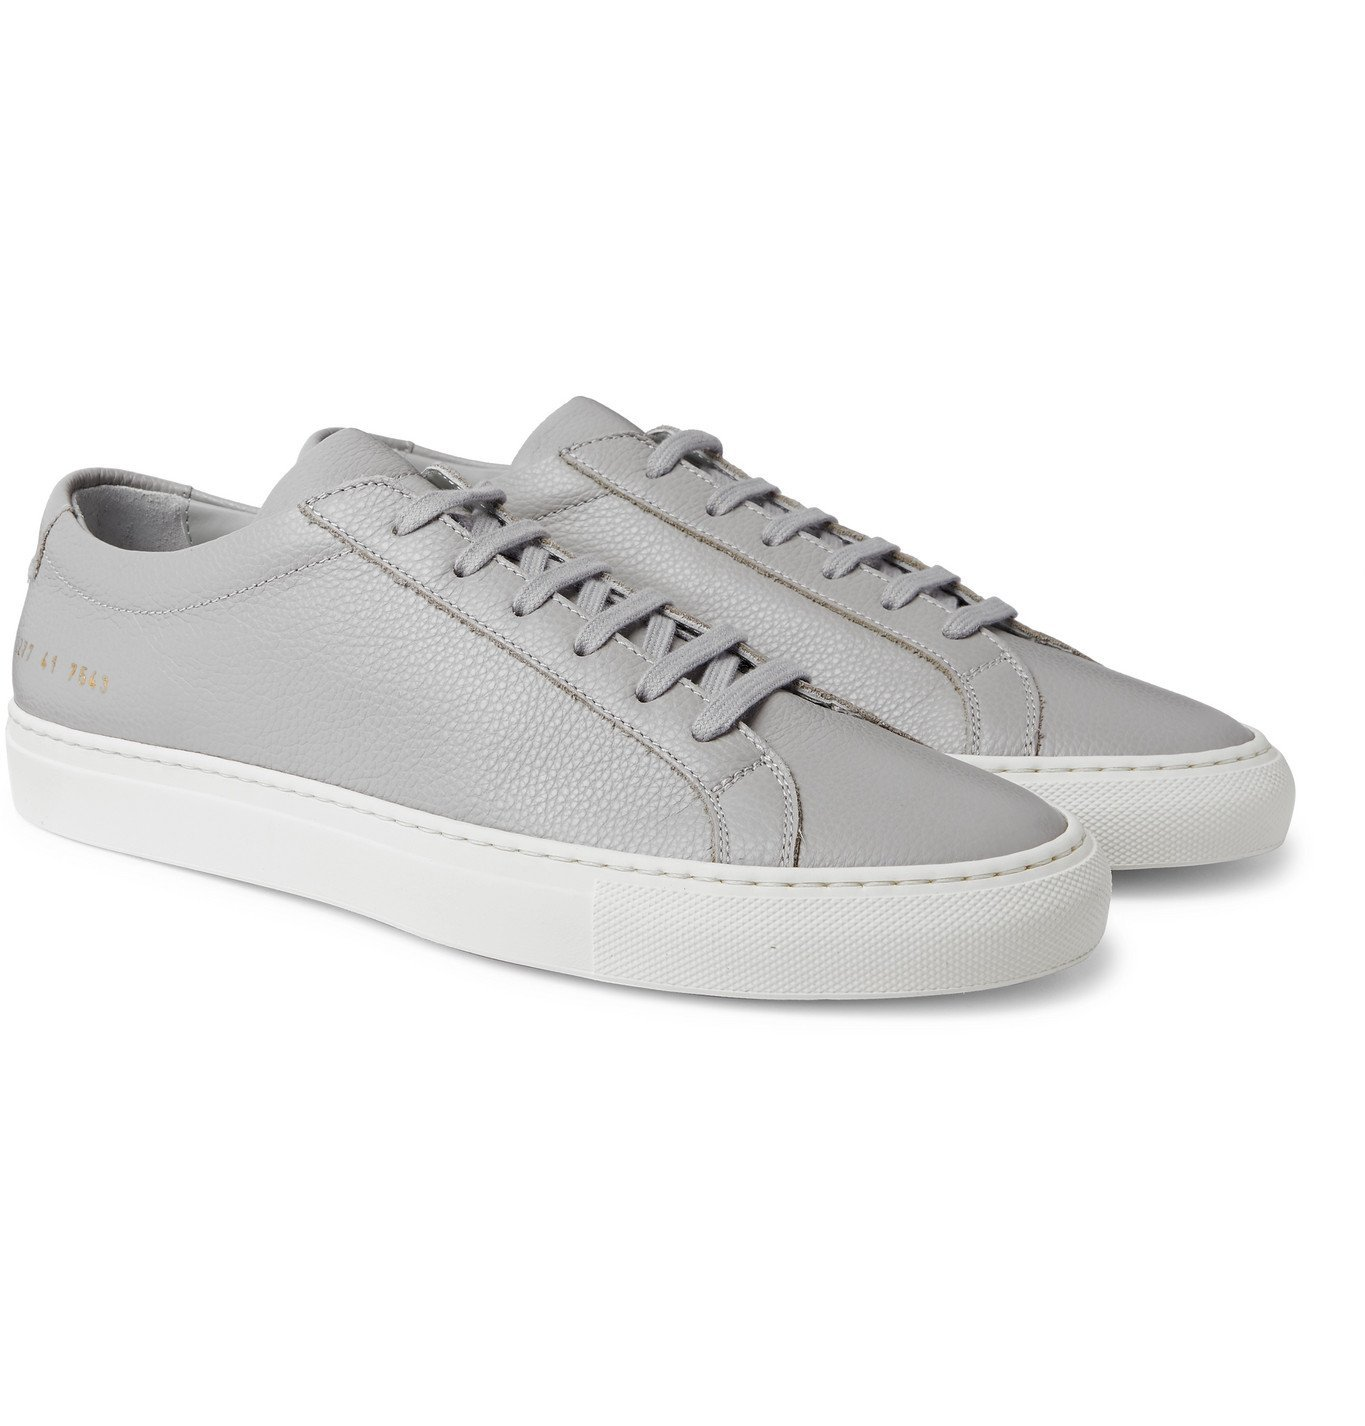 Common Projects - Achilles Pebble-Grain Leather Sneakers - Gray